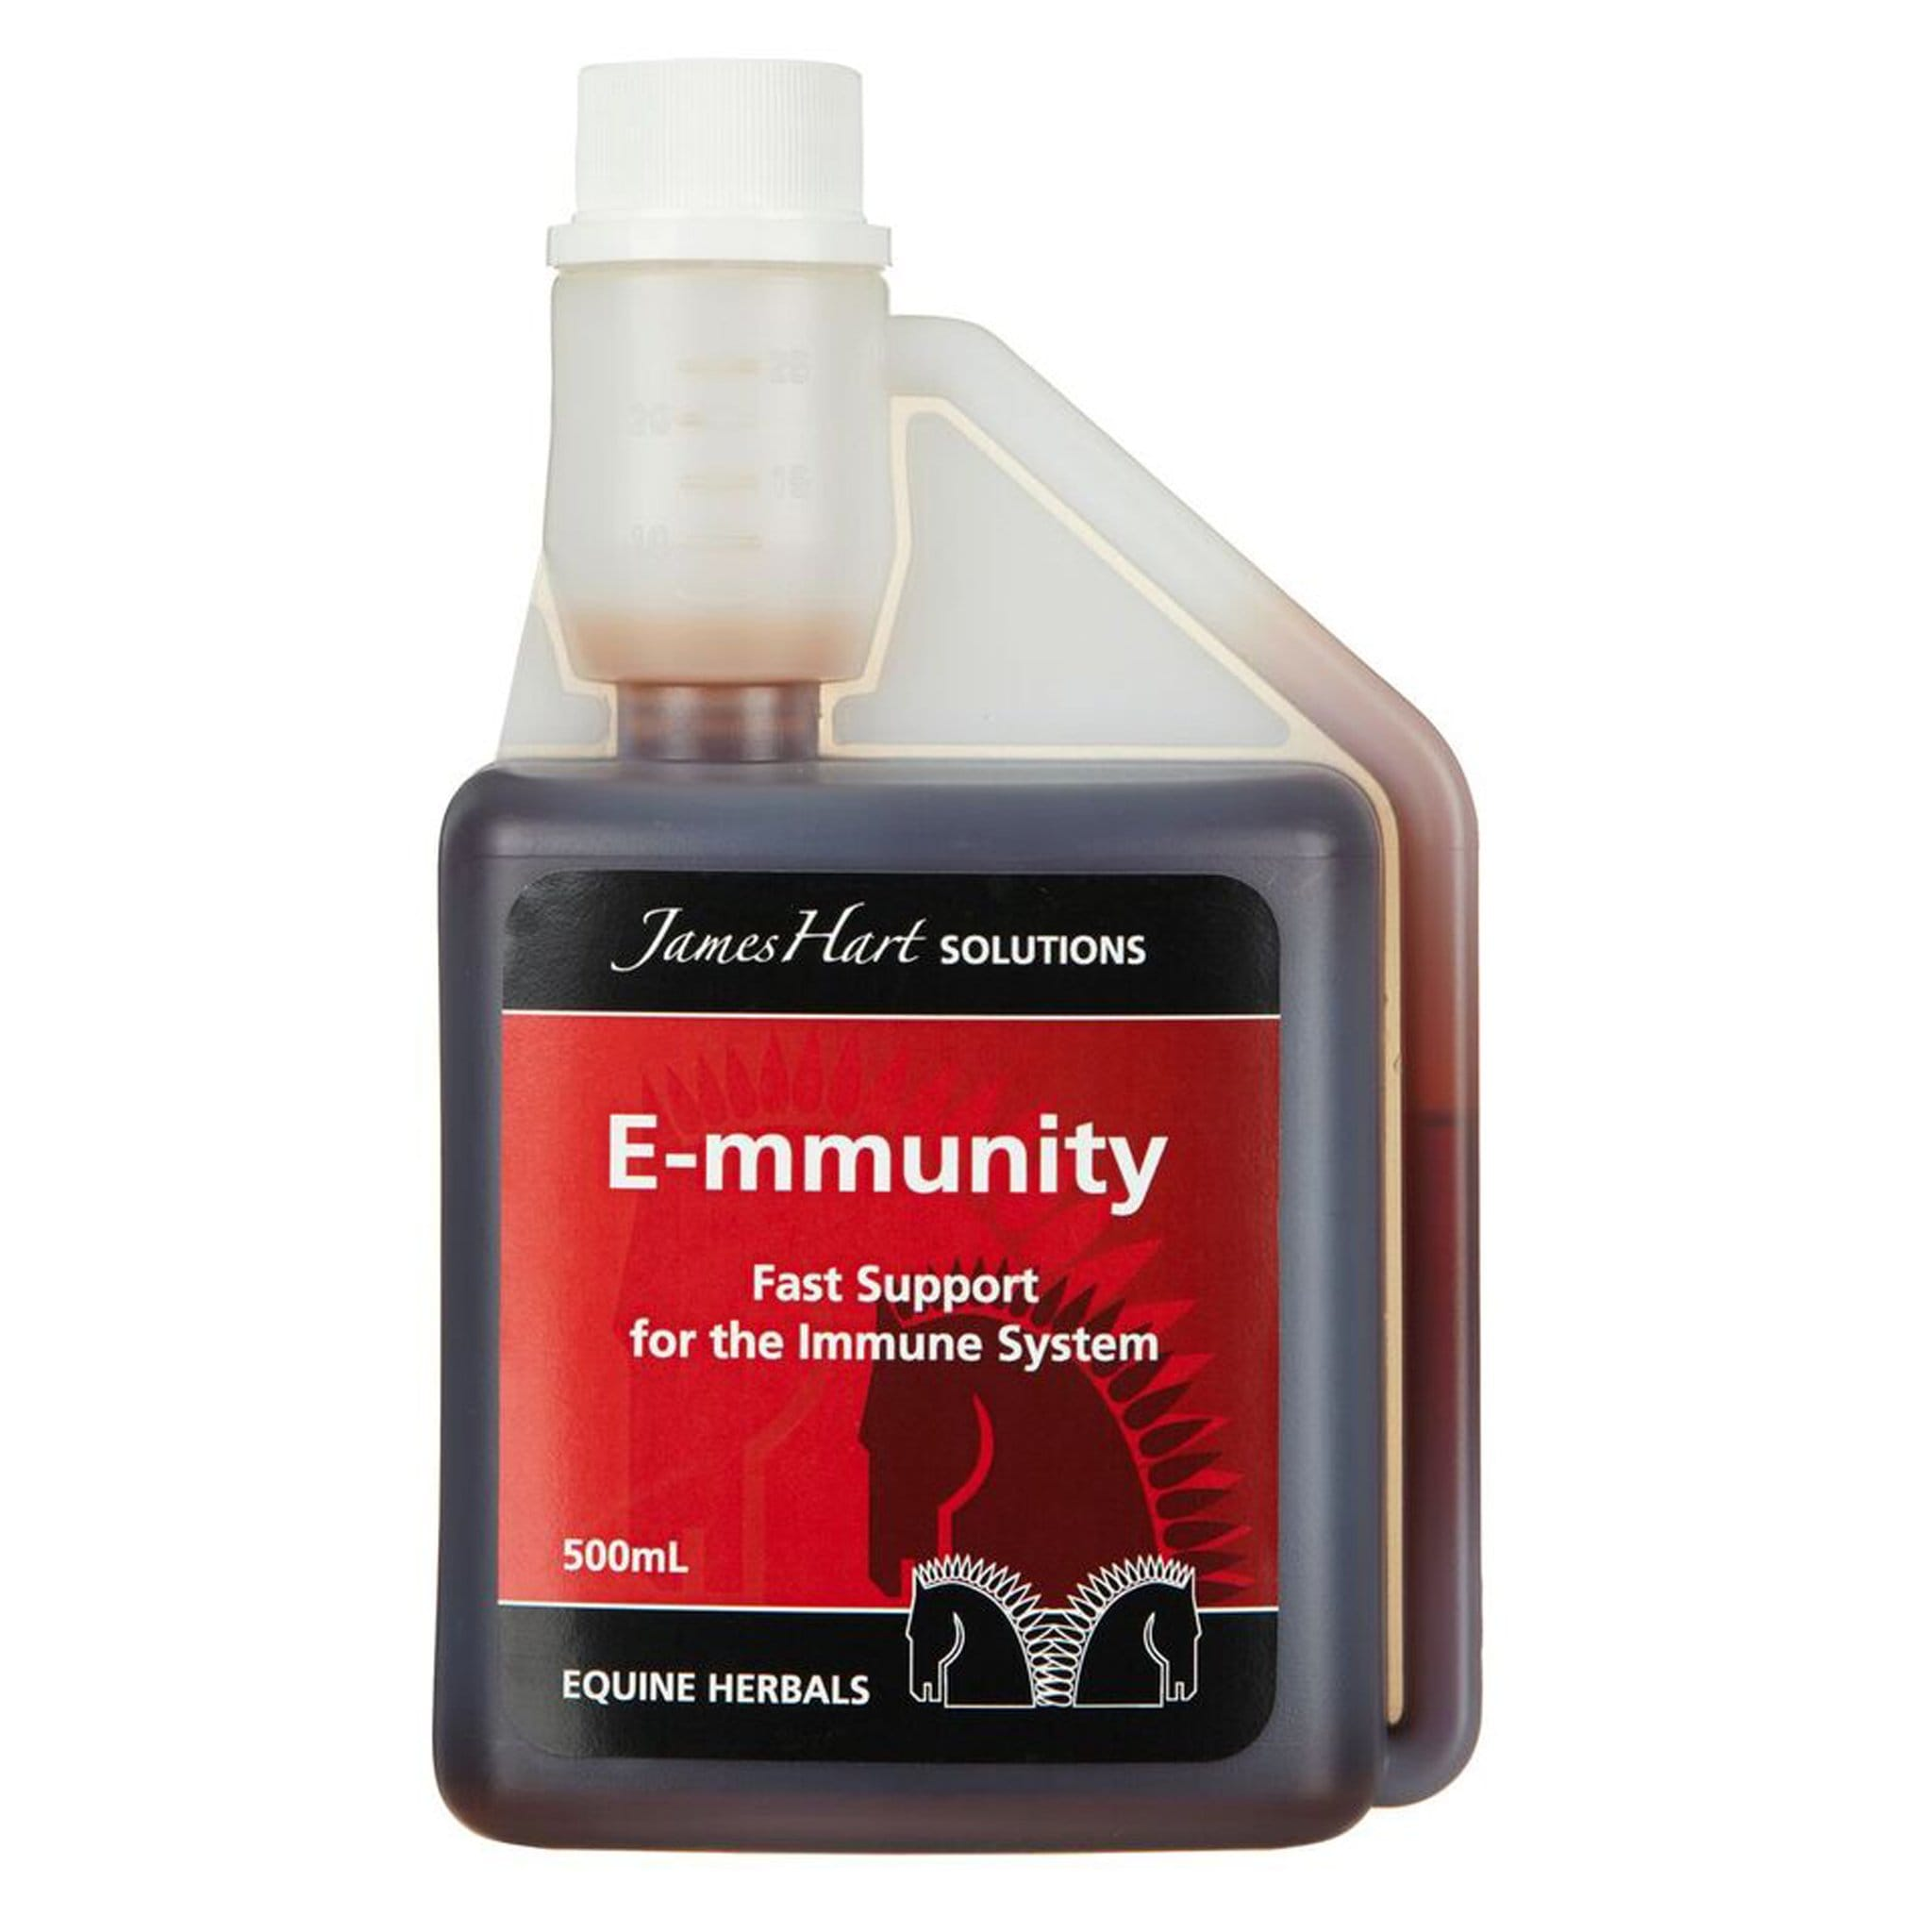 James Hart E-mmunity 9075